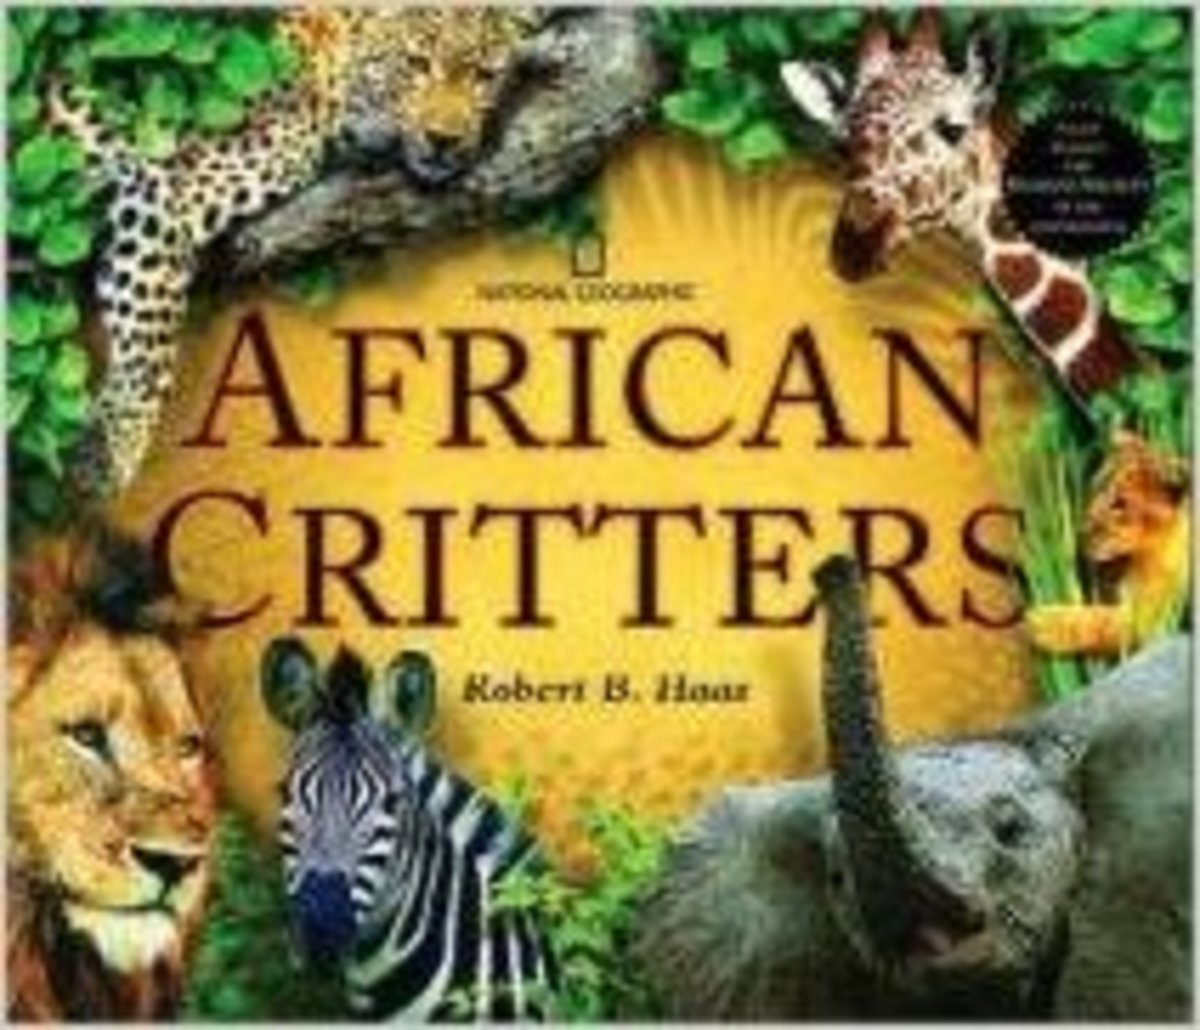 African Critters by Robert Haas - Image credit: amazon.com